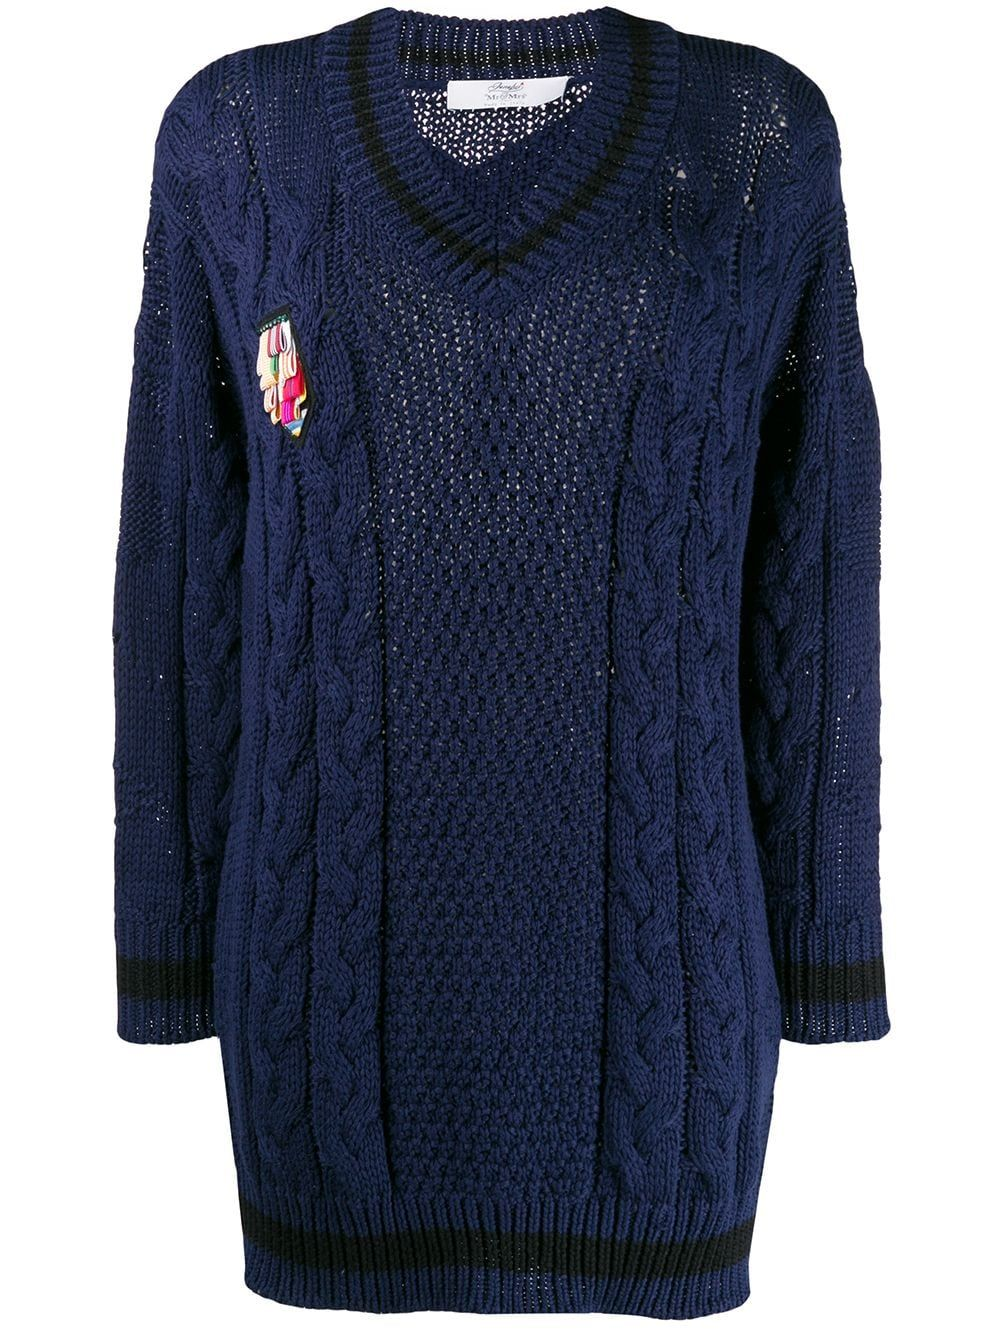 Mr & Mrs Italy chunky knit jumper - Blue